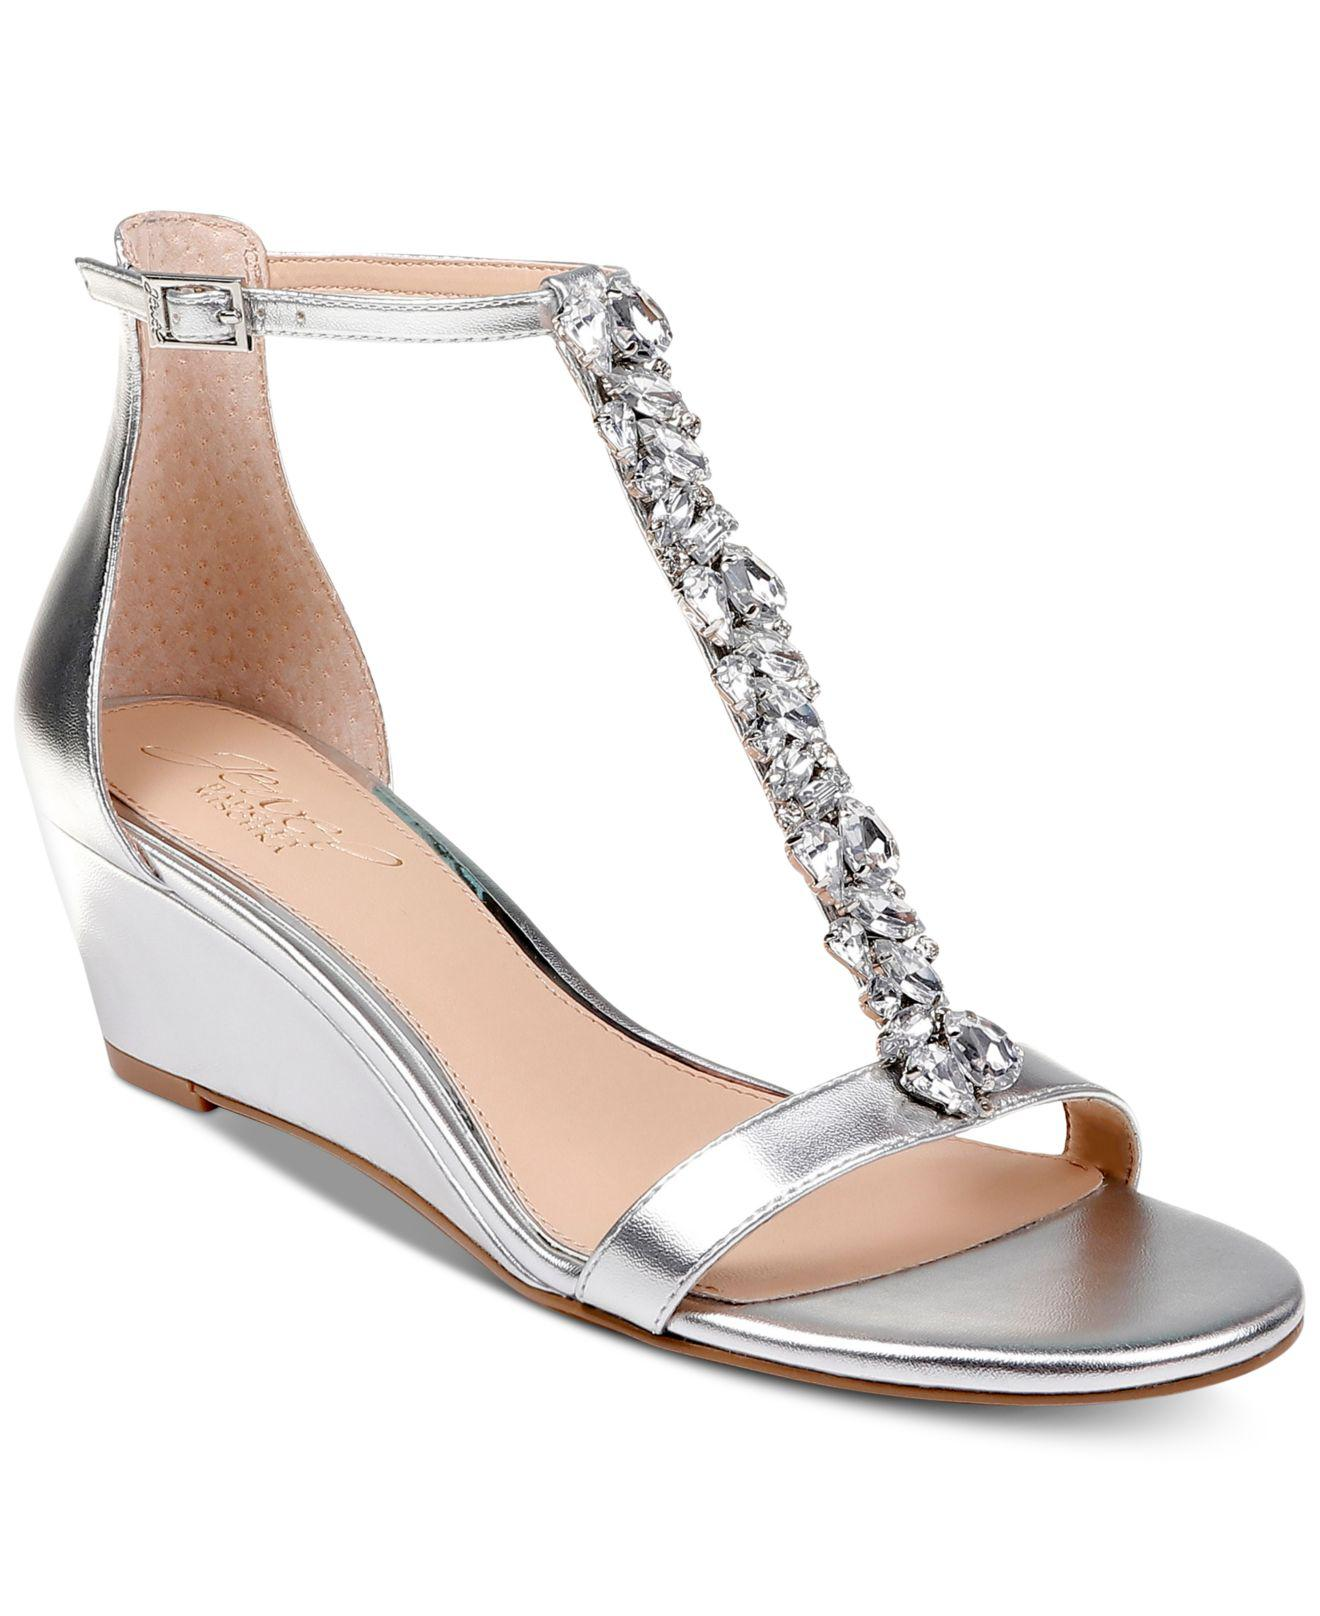 f0b462f302fb Lyst - Badgley Mischka Darrell Wedge Sandals in Metallic